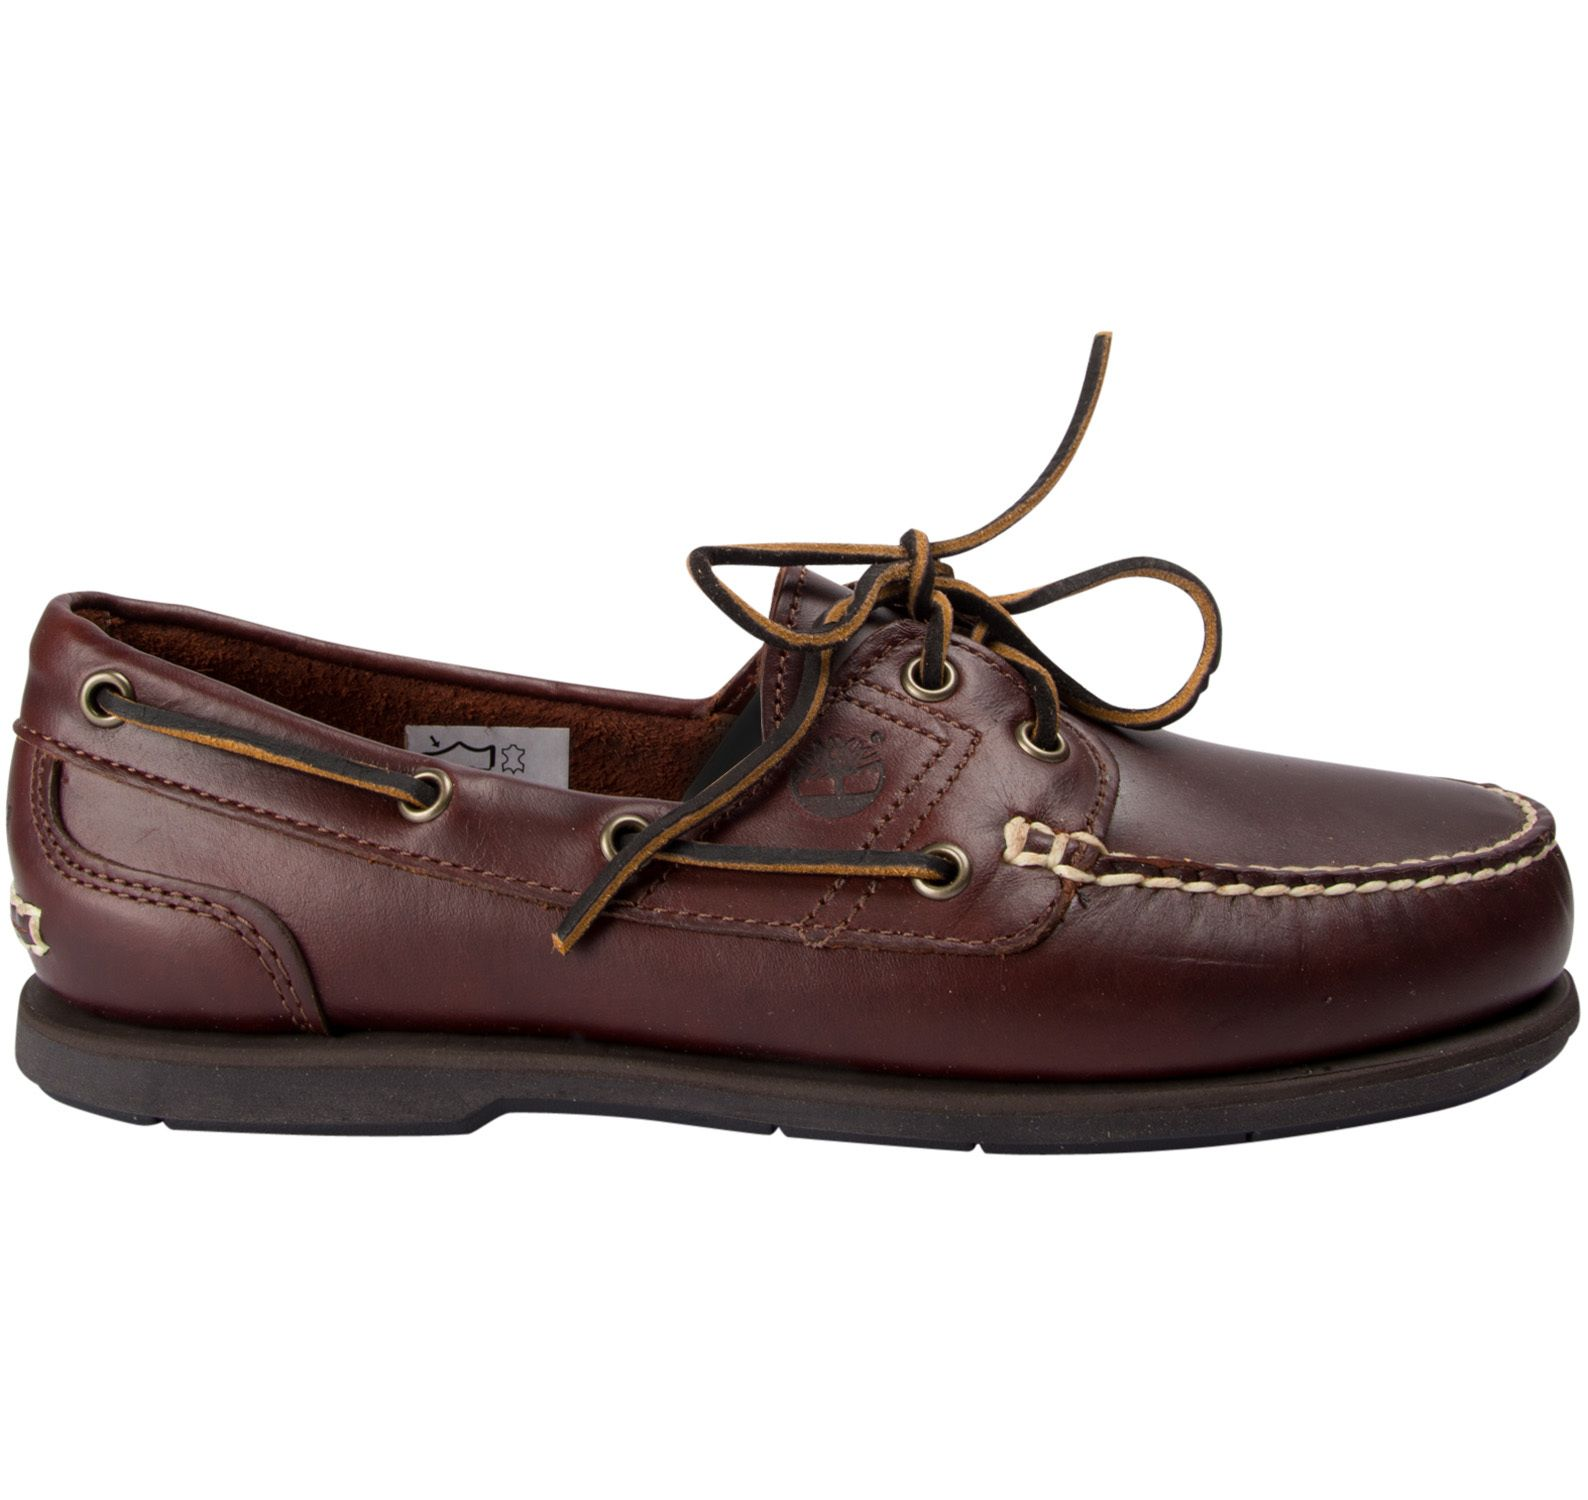 2i Boat Rootbeer Sm Brown, Brown, 43.5,  Timberland